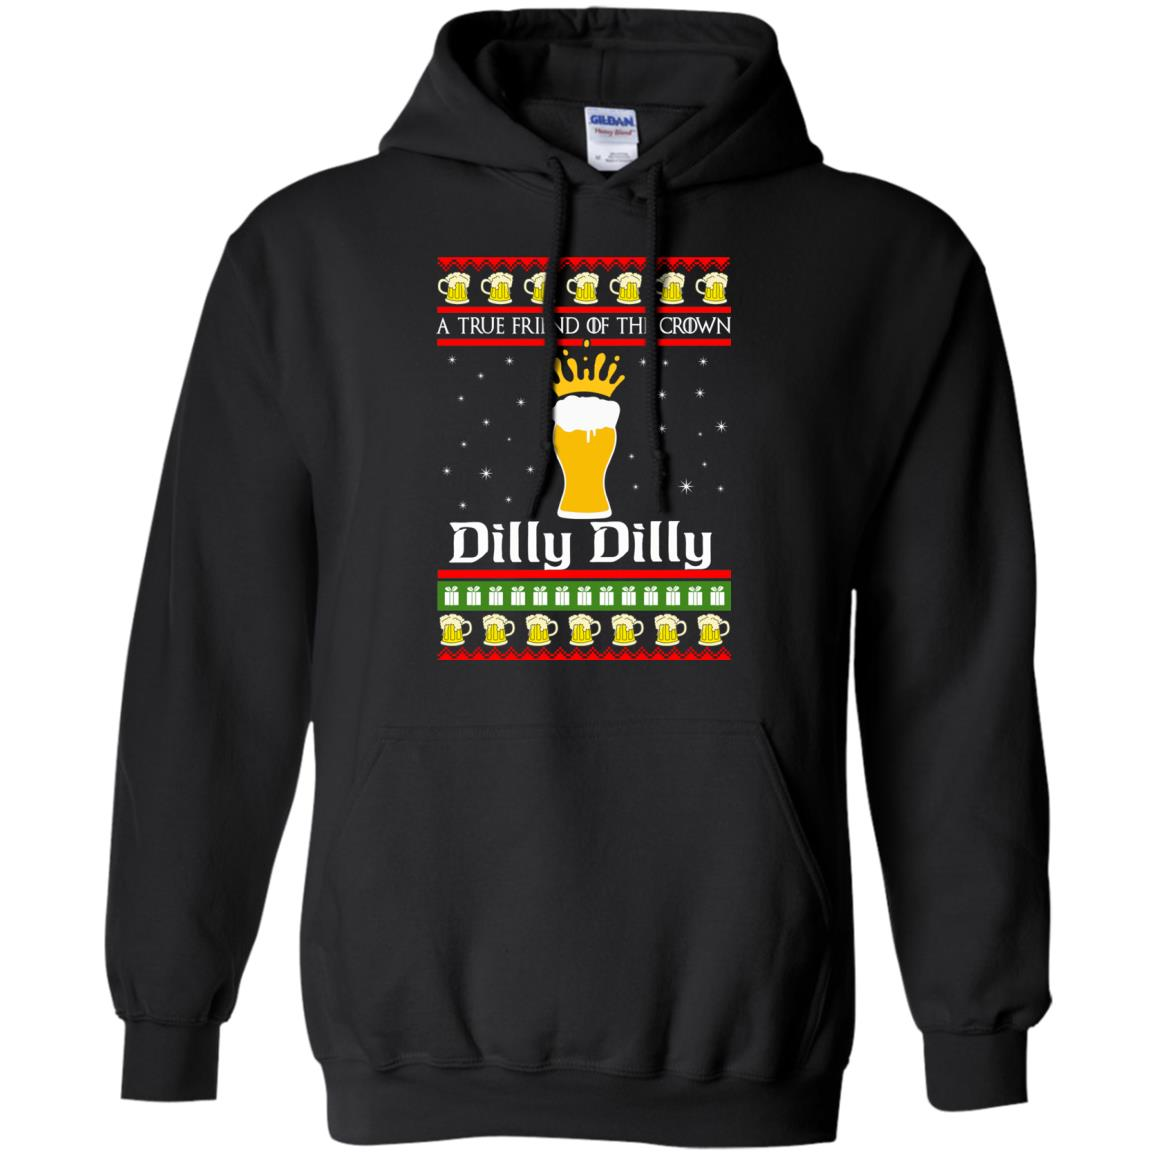 image 6322 - A True Friend Of The Crown Dilly Dilly Christmas Sweater, Hoodie